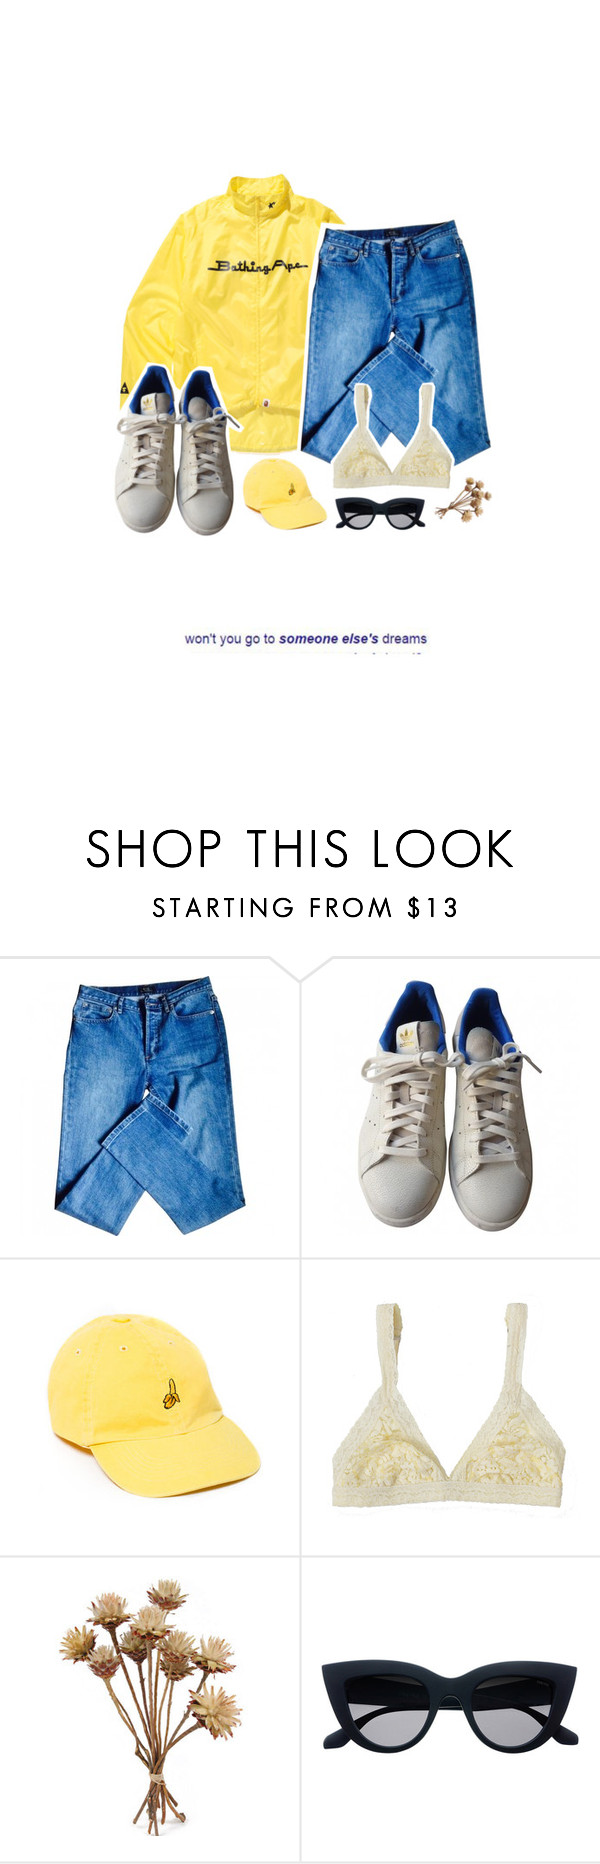 """""""+. let my best friend drive"""" by oisauce ❤ liked on Polyvore featuring A BATHING APE, A.P.C., adidas, UNIF and Lonely"""